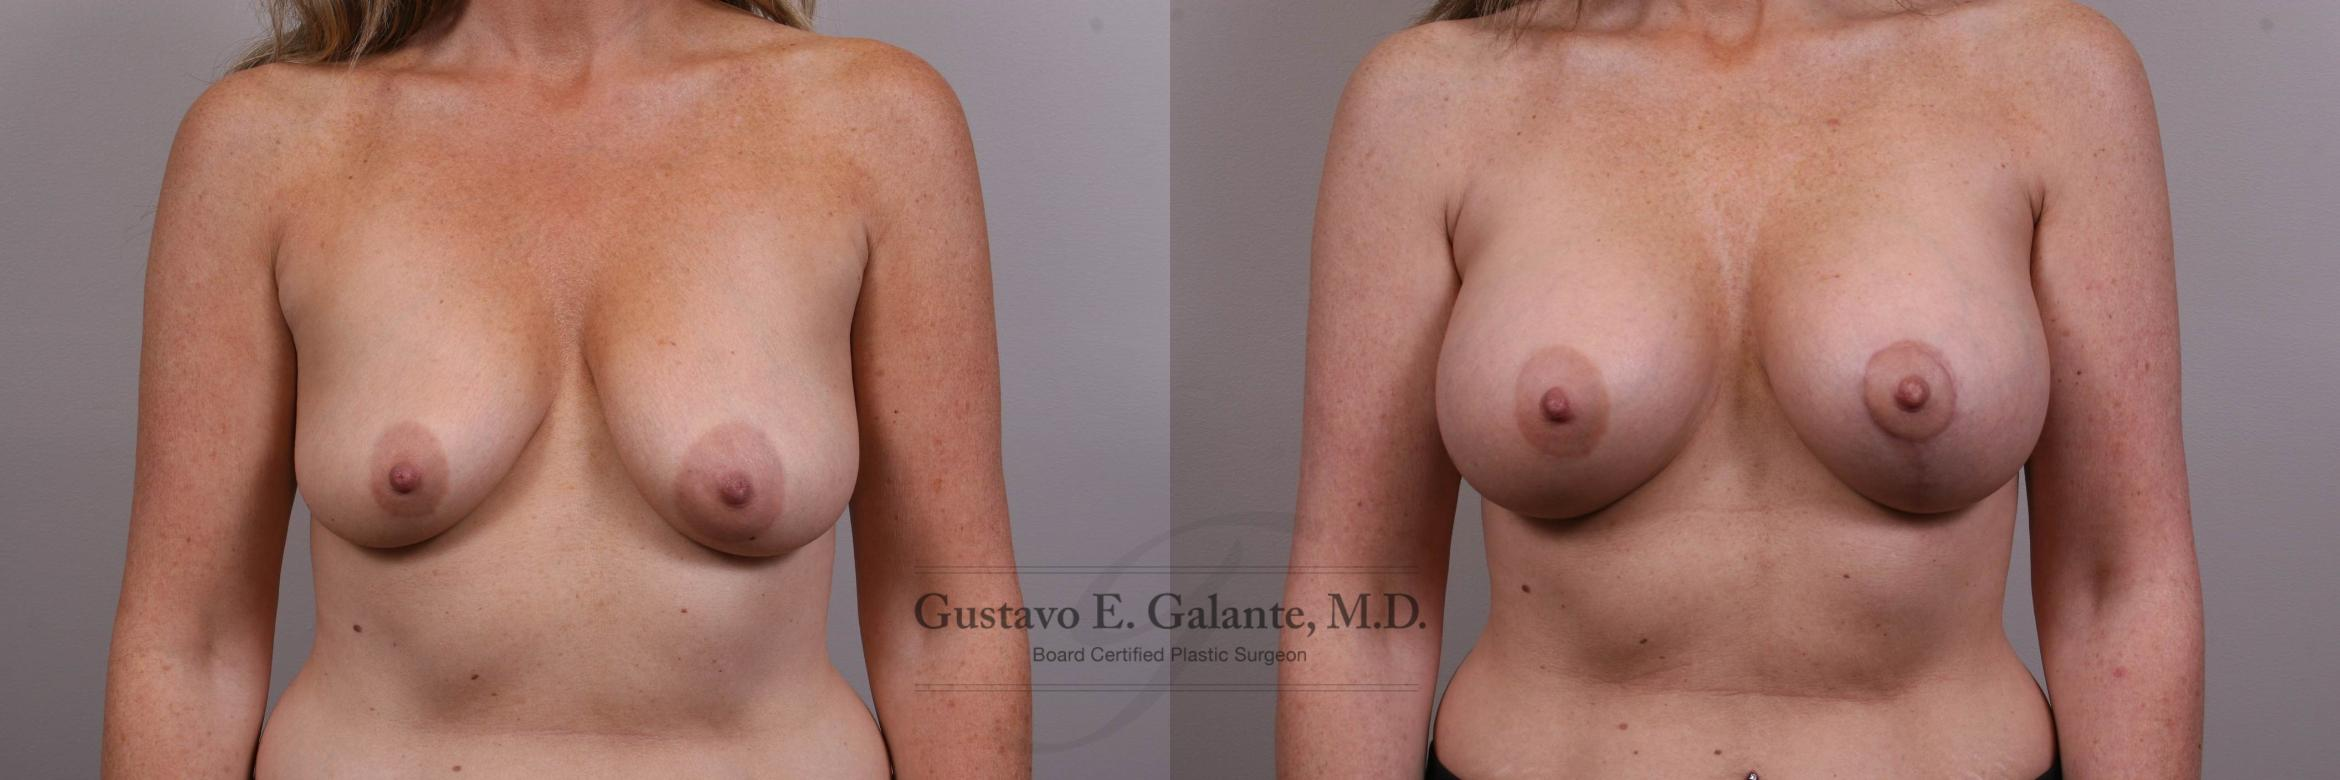 Breast Augmentation Case 134 Before & After View #1 | Valparaiso & Schererville, IN | Gustavo E. Galante, MD